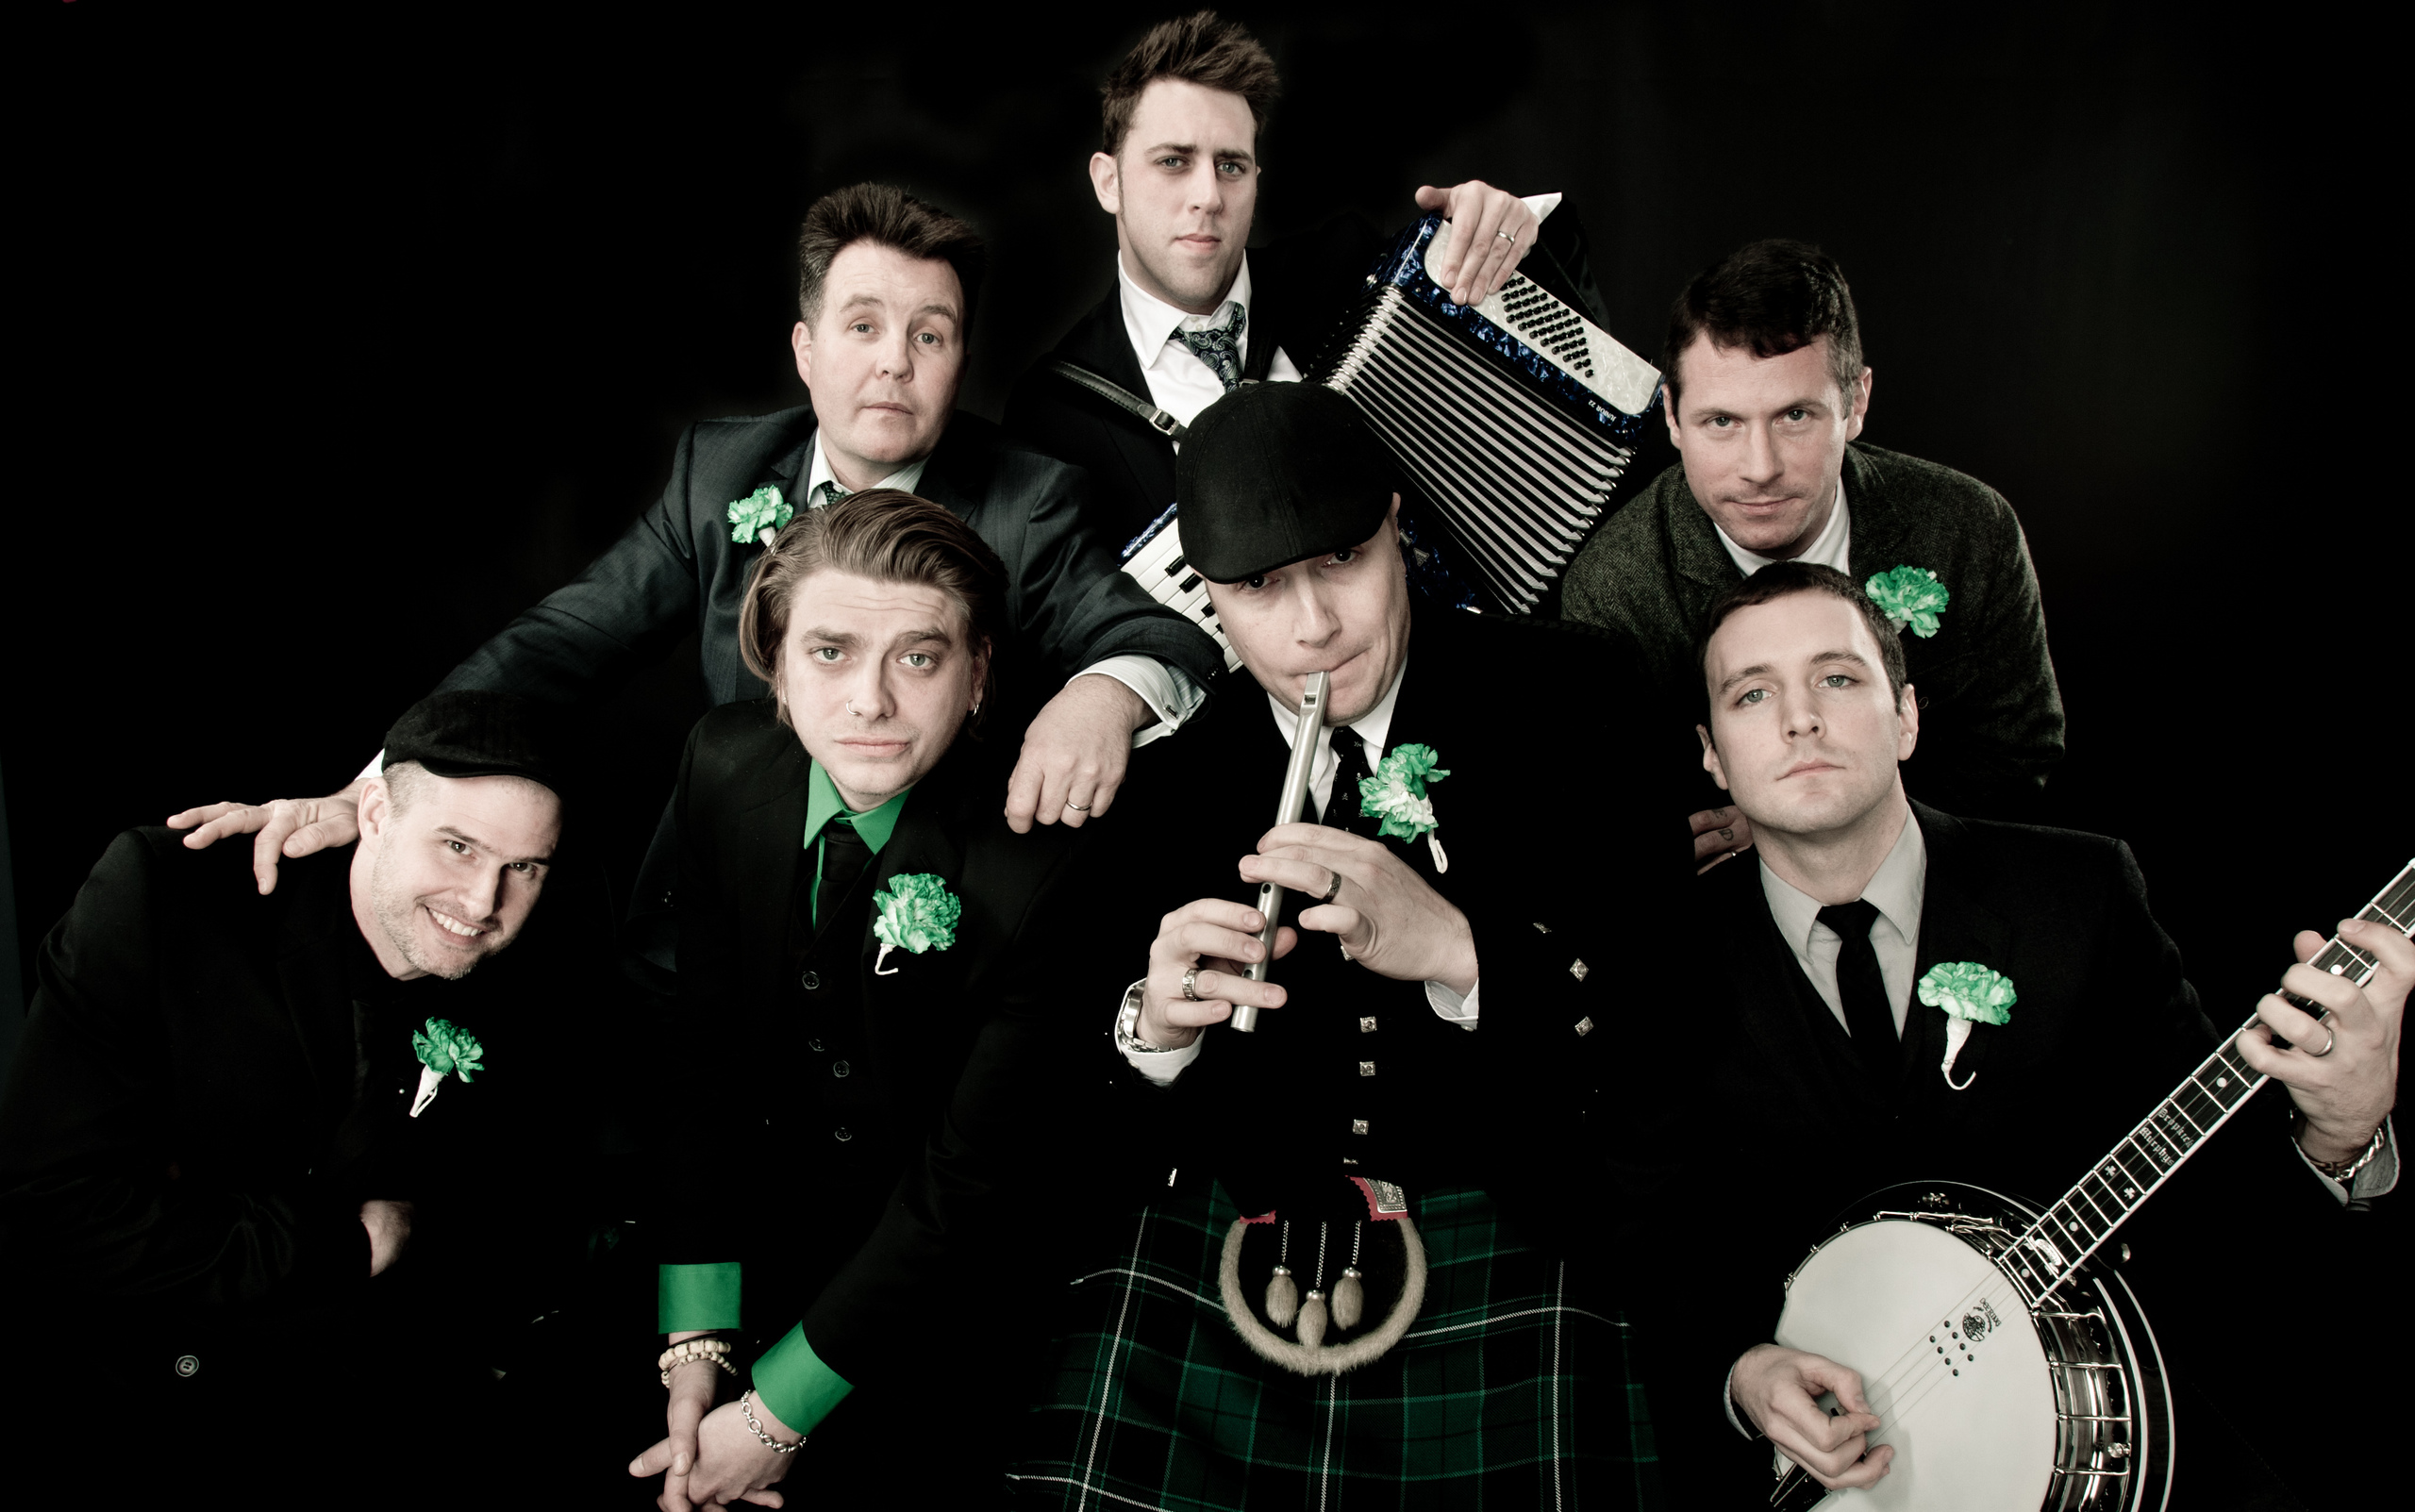 Dropkick Murphys: Top 10 Songs - Project Revolver